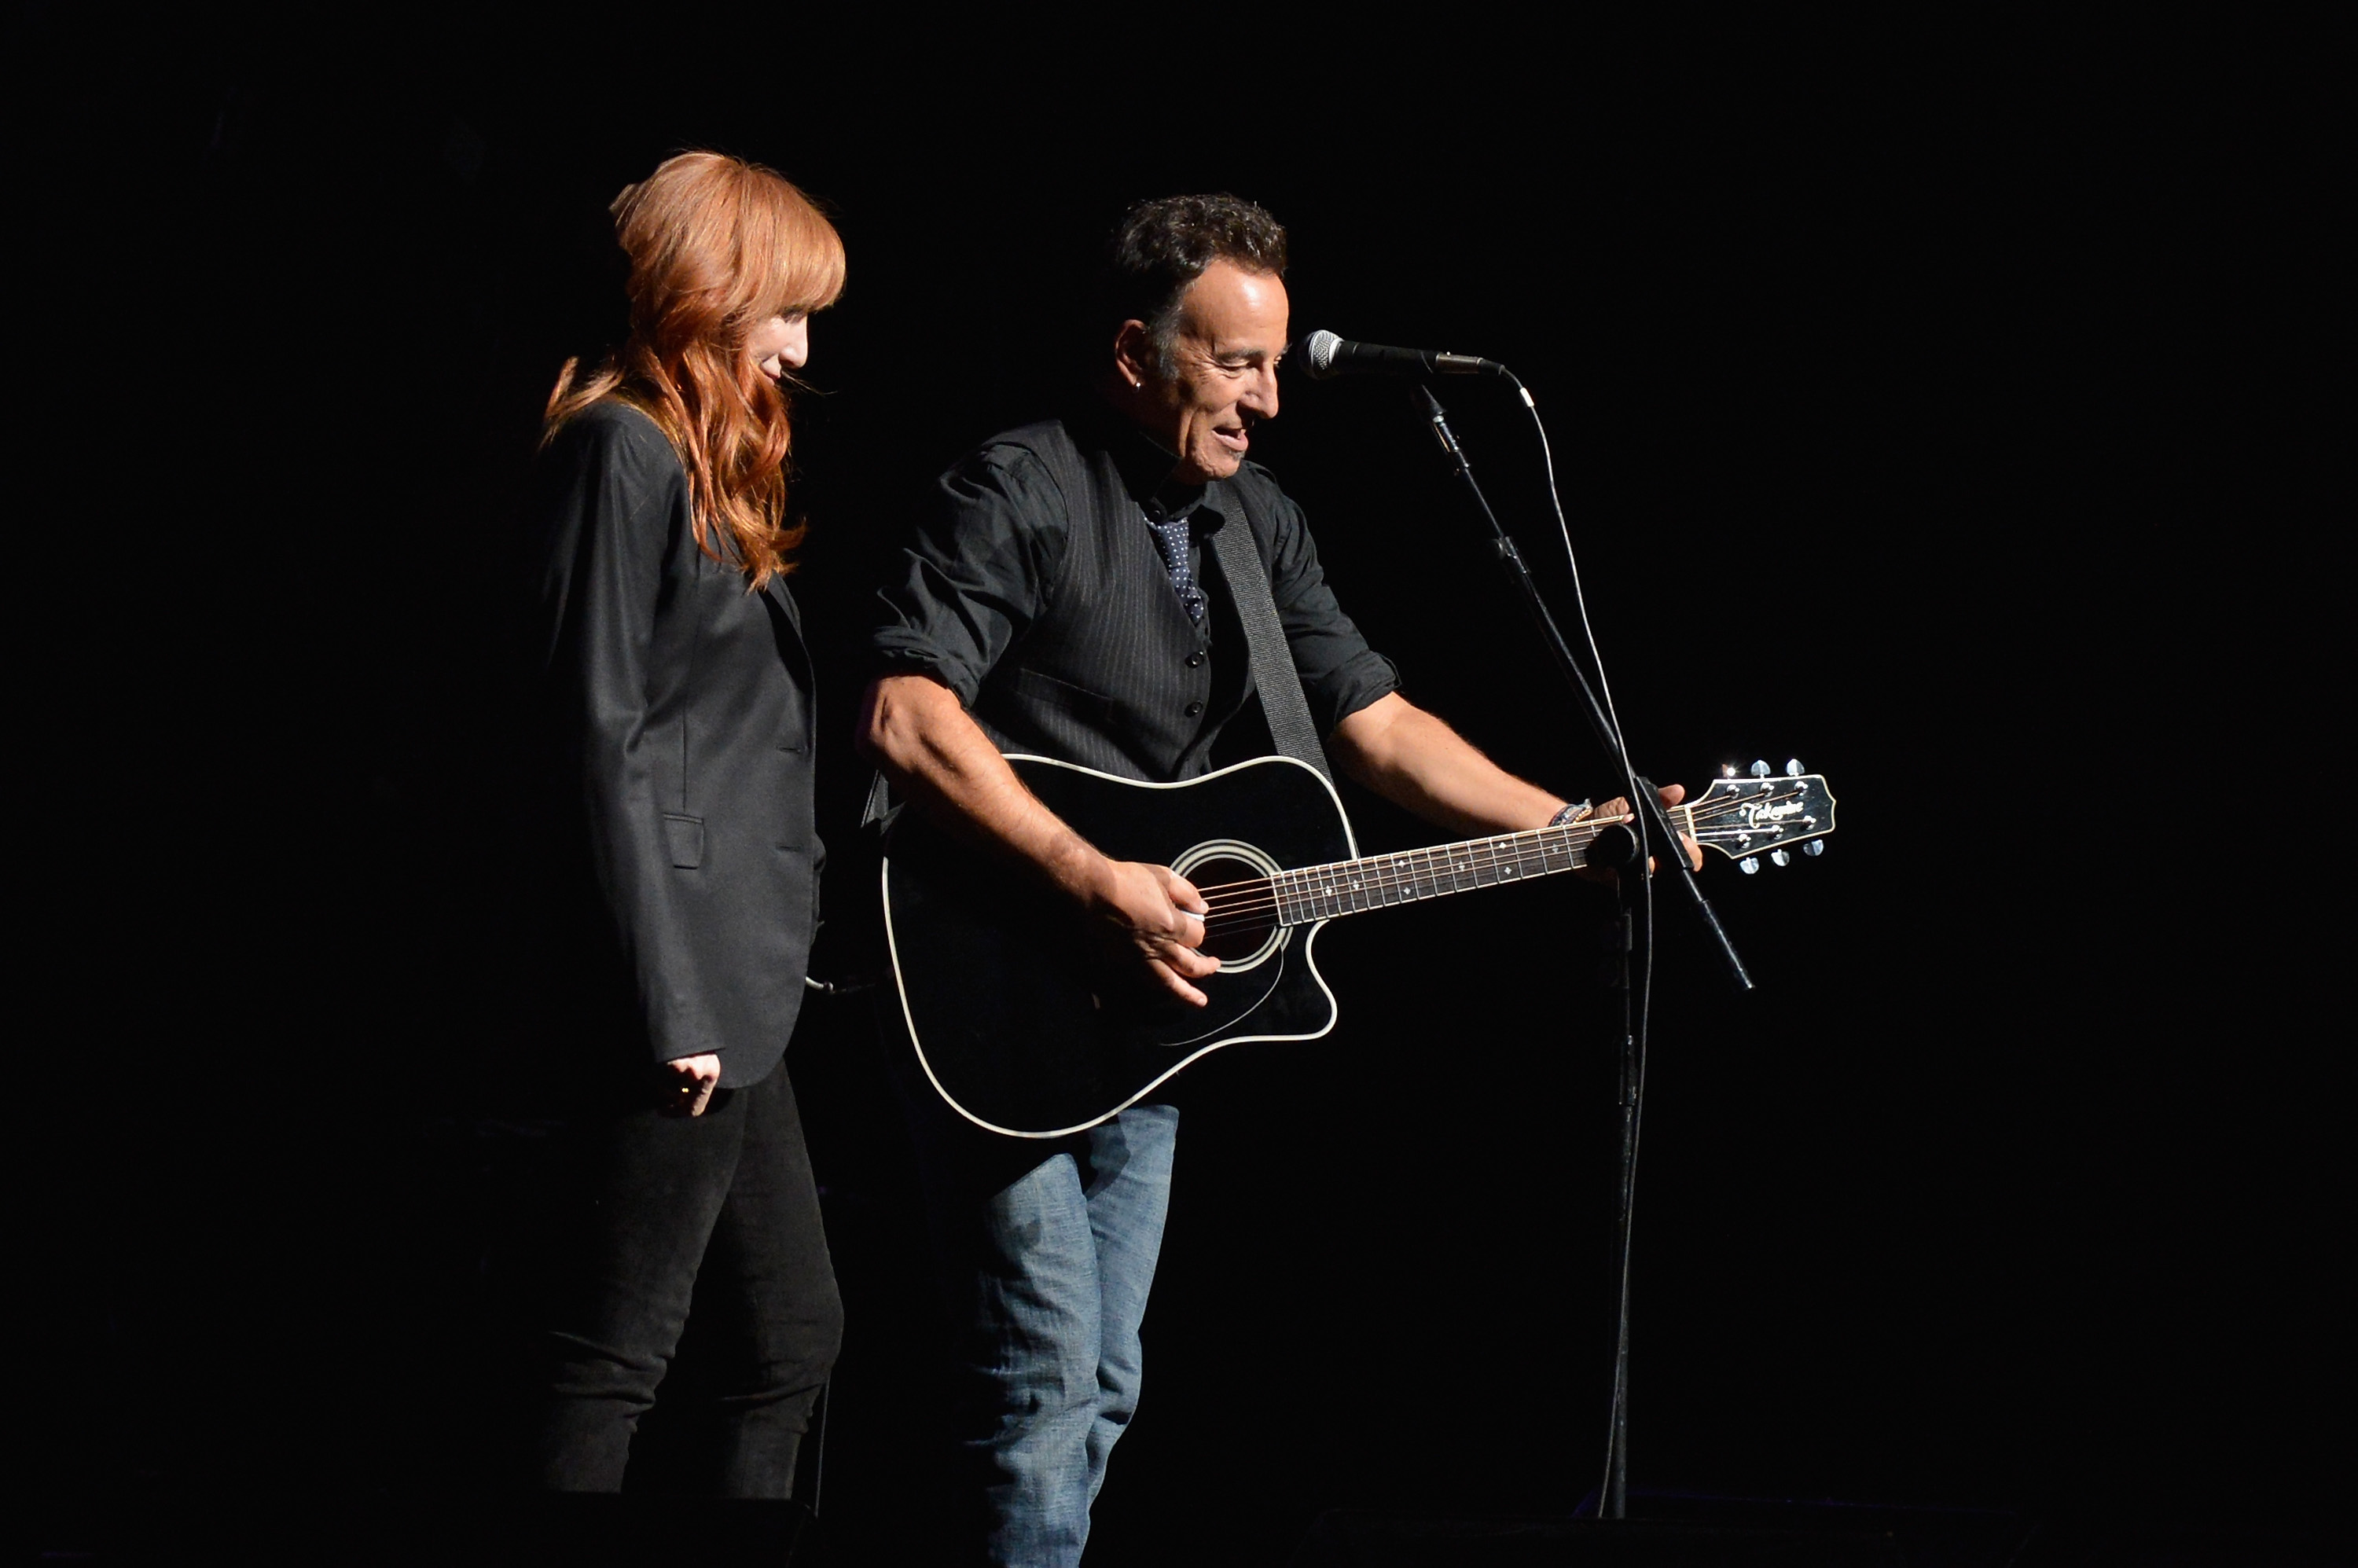 bruce and patti by mike coppola Roger Waters, Bruce Springsteen Stun At Stand Up For Heroes